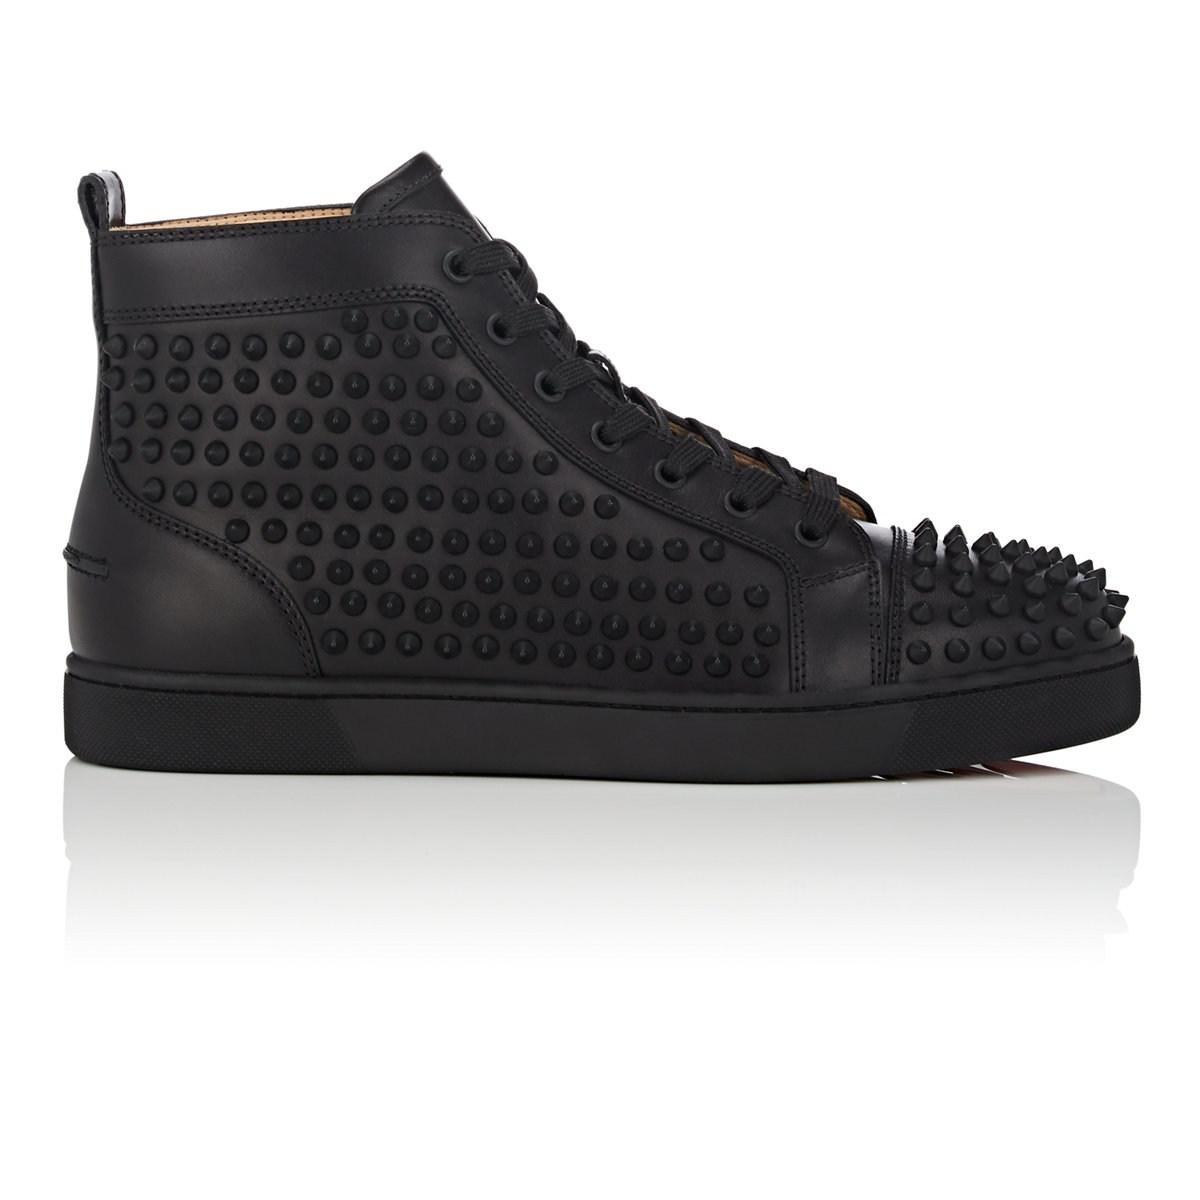 680283571a2 Christian Louboutin Yang Louis Flat Leather Sneakers in Black for ...